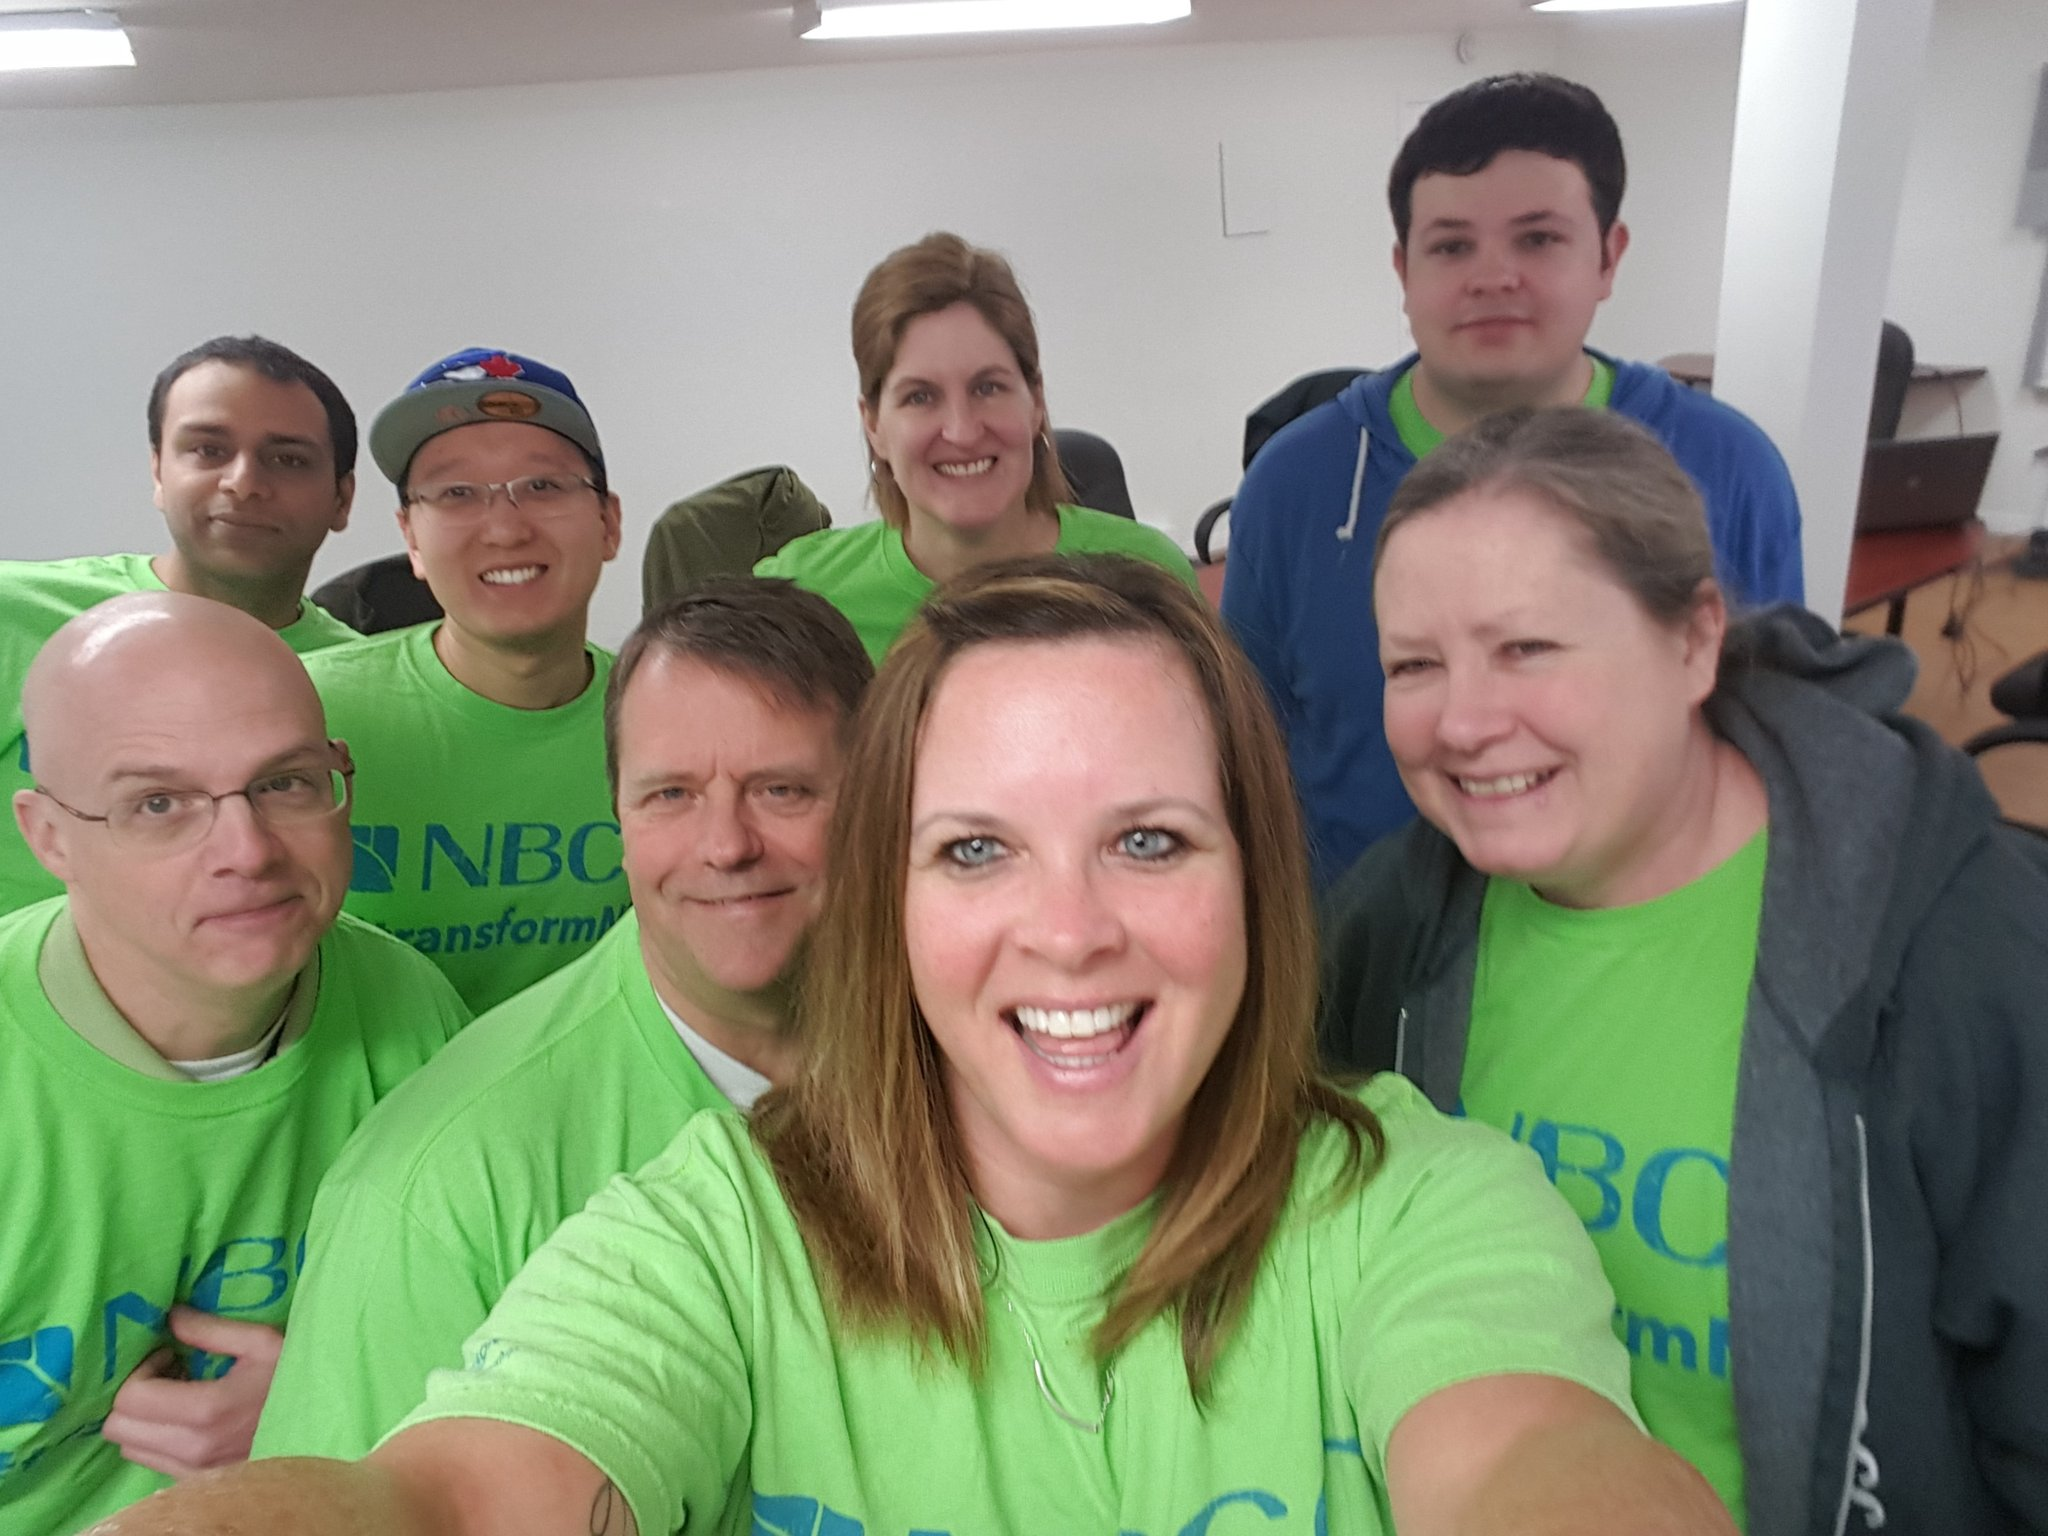 Thankful for service day with @mynbcc #transformNB #nbcc rocks https://t.co/JMOxyV5D3a